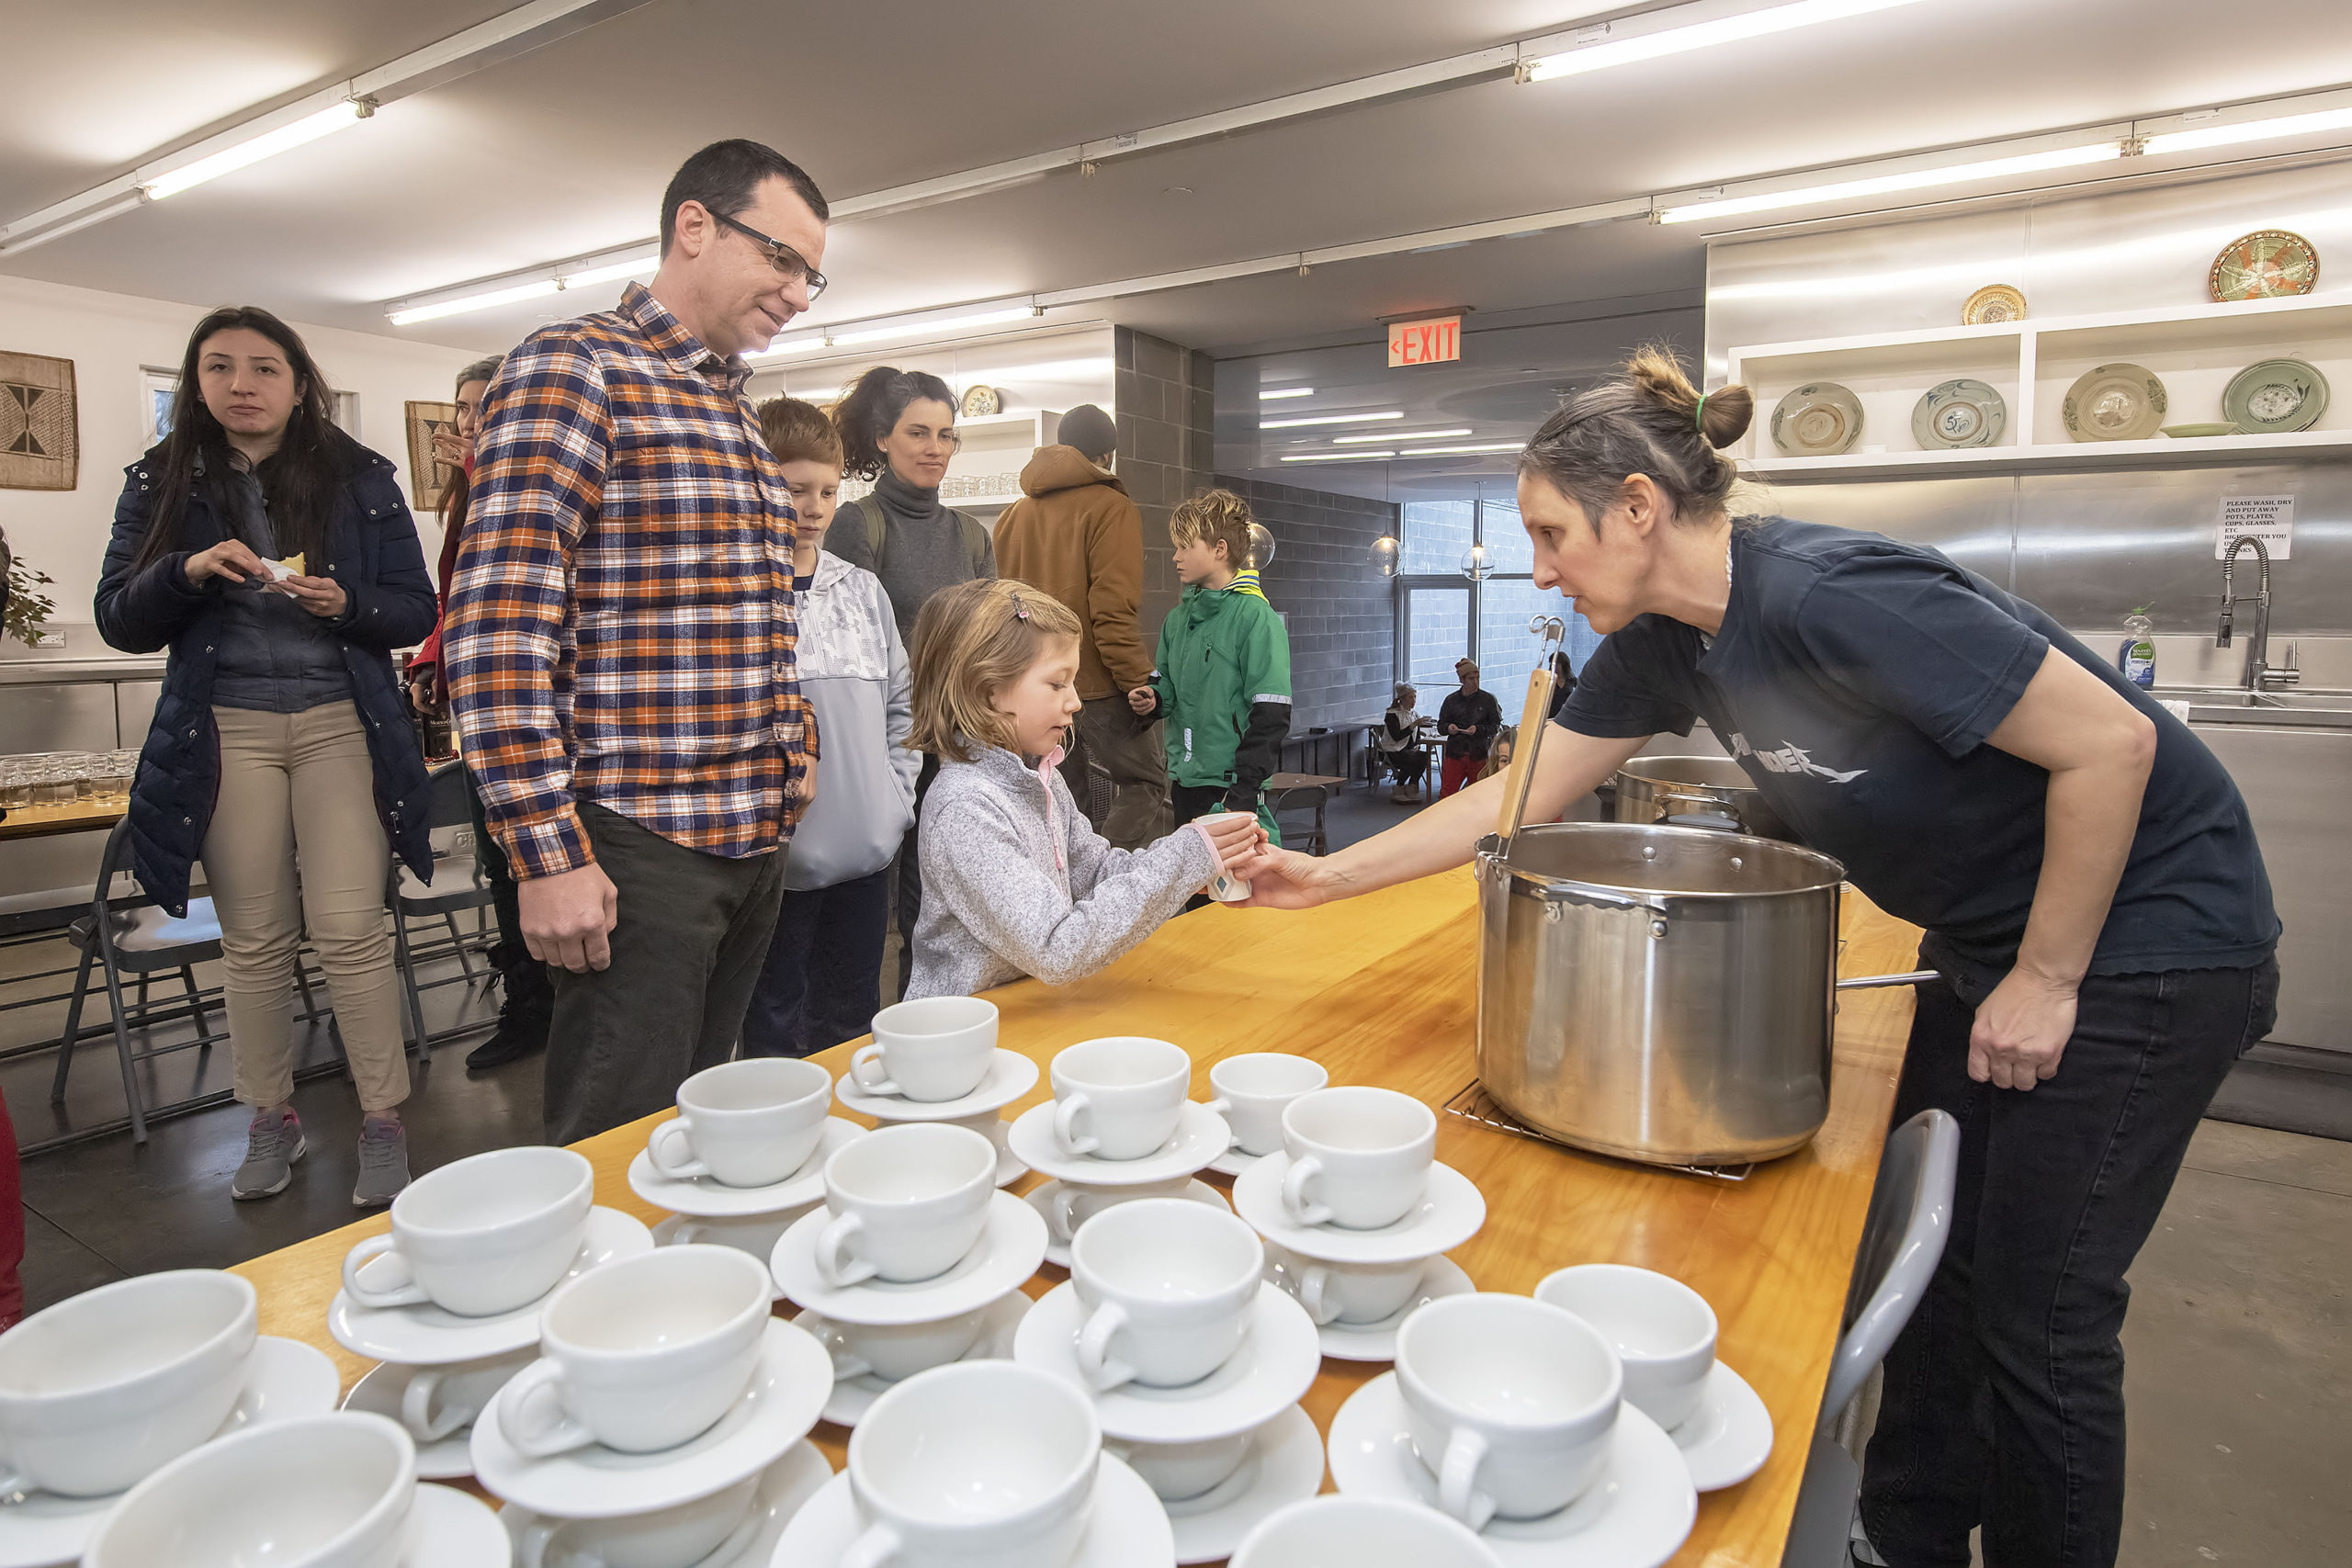 Elke Luyten hands out cups of hot mulled cider during a kickoff party at the Watermill Center on Saturday afternoon.  MICHAEL HELLER